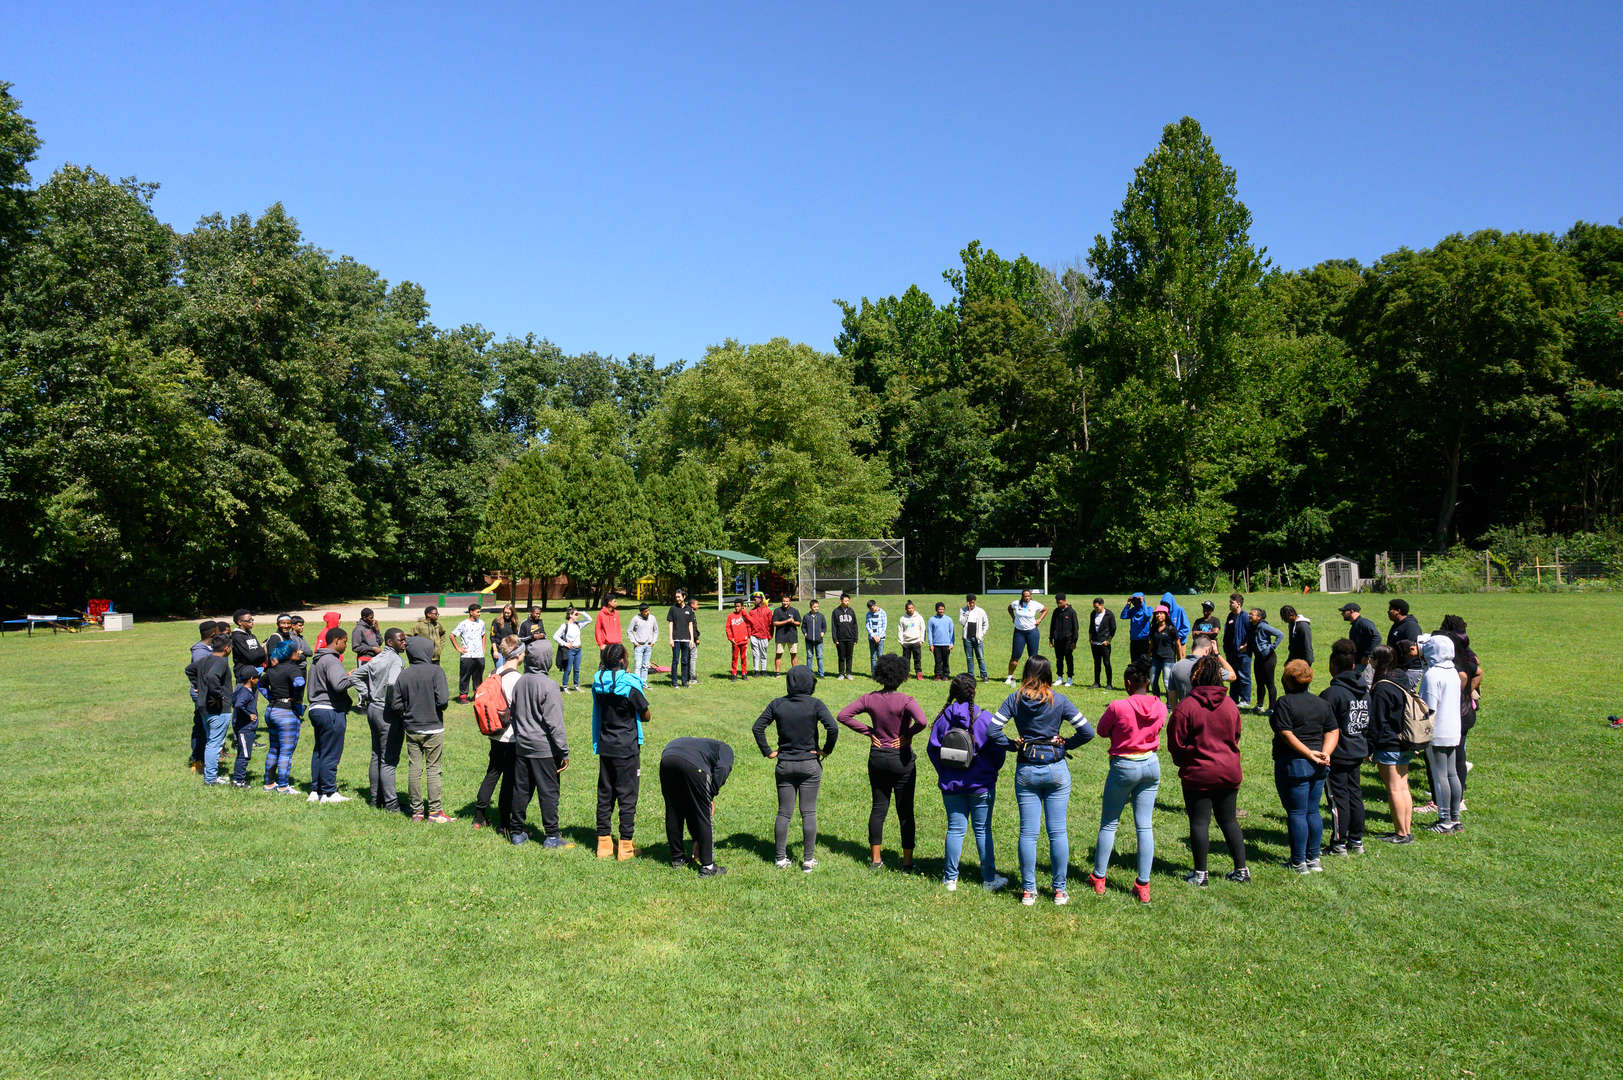 A large group of students standing in a circle on a field with trees in the background